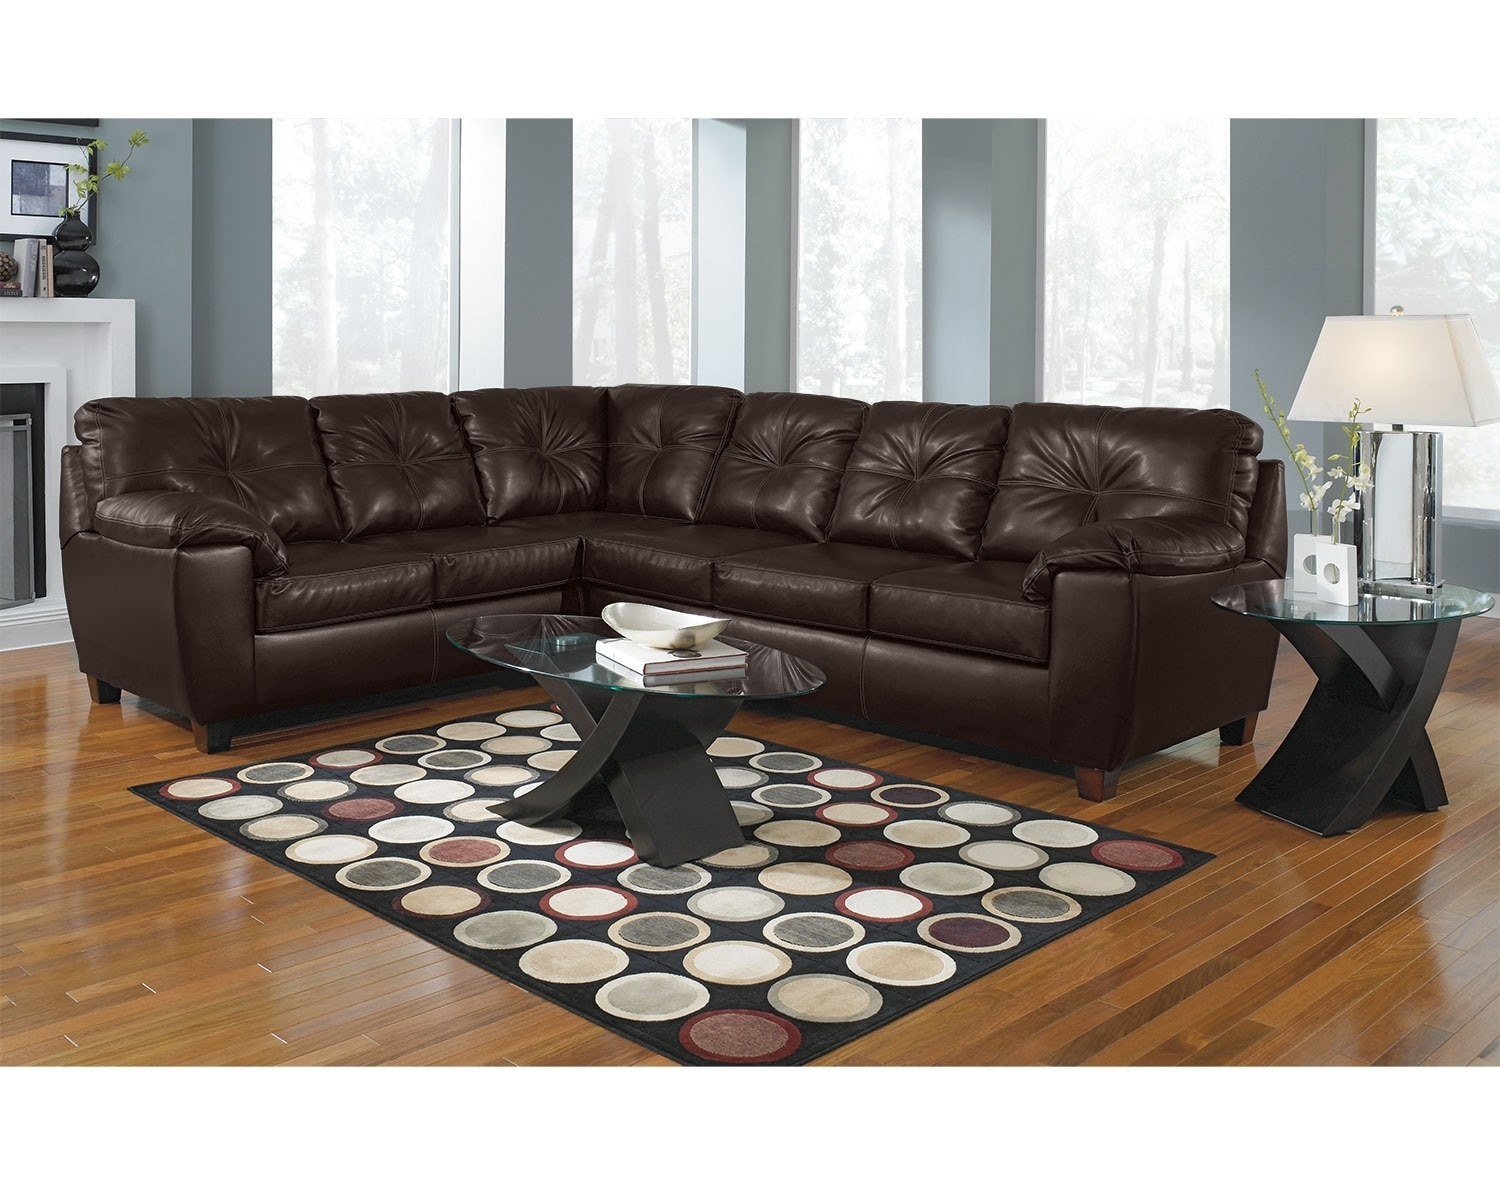 Factory Outlet Home Furniture American Signature Furniture Inside Closeout Sectional Sofas (Image 5 of 15)